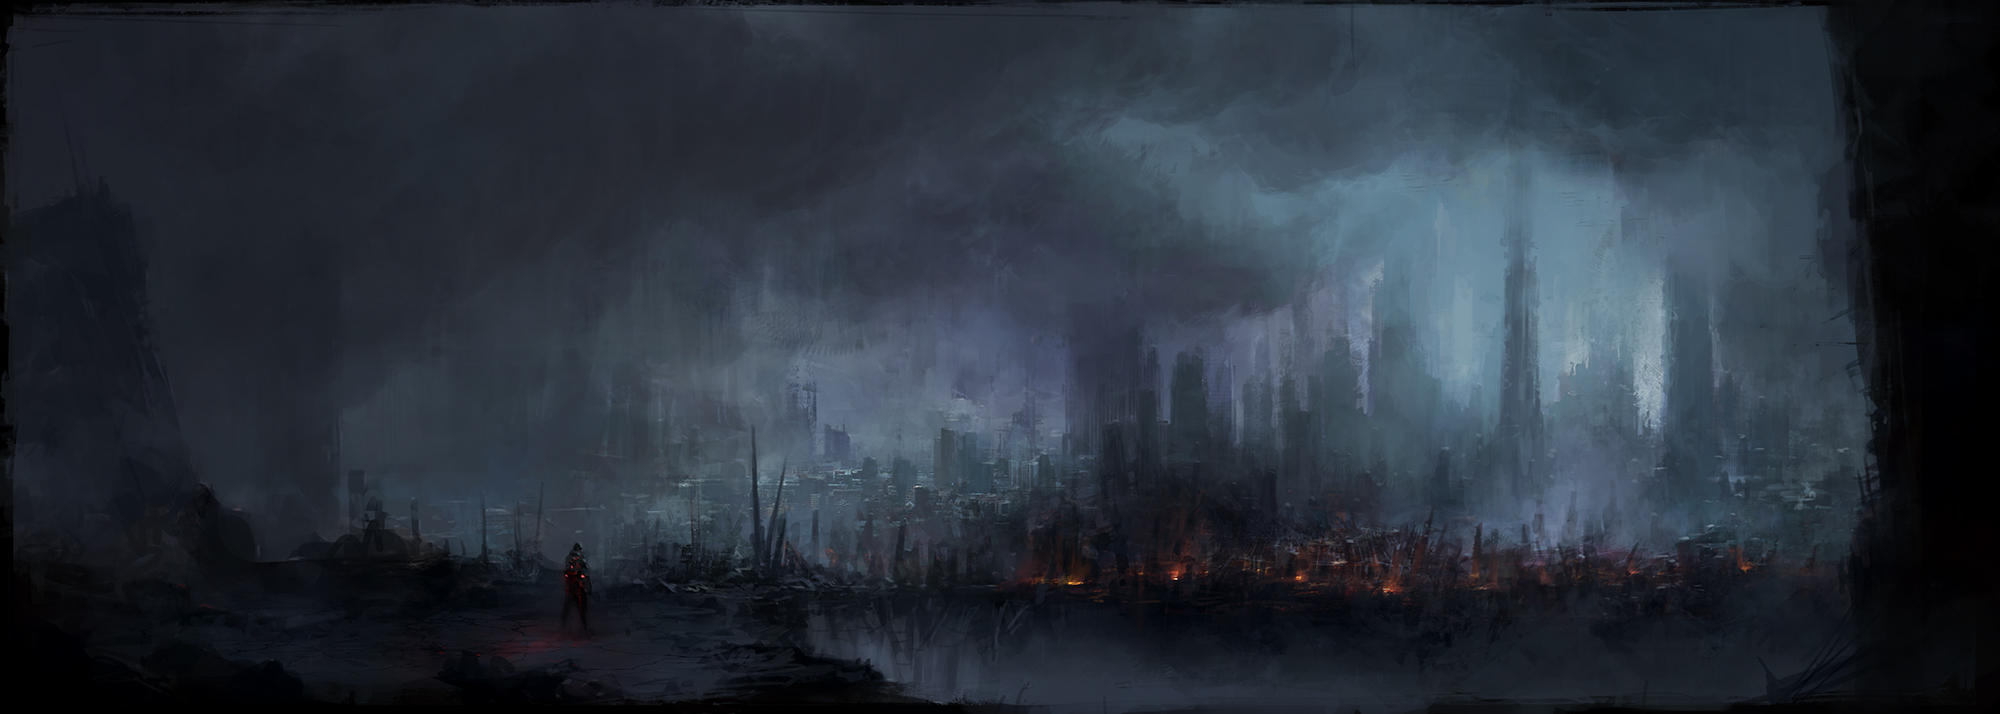 Silent City by ChrisCold